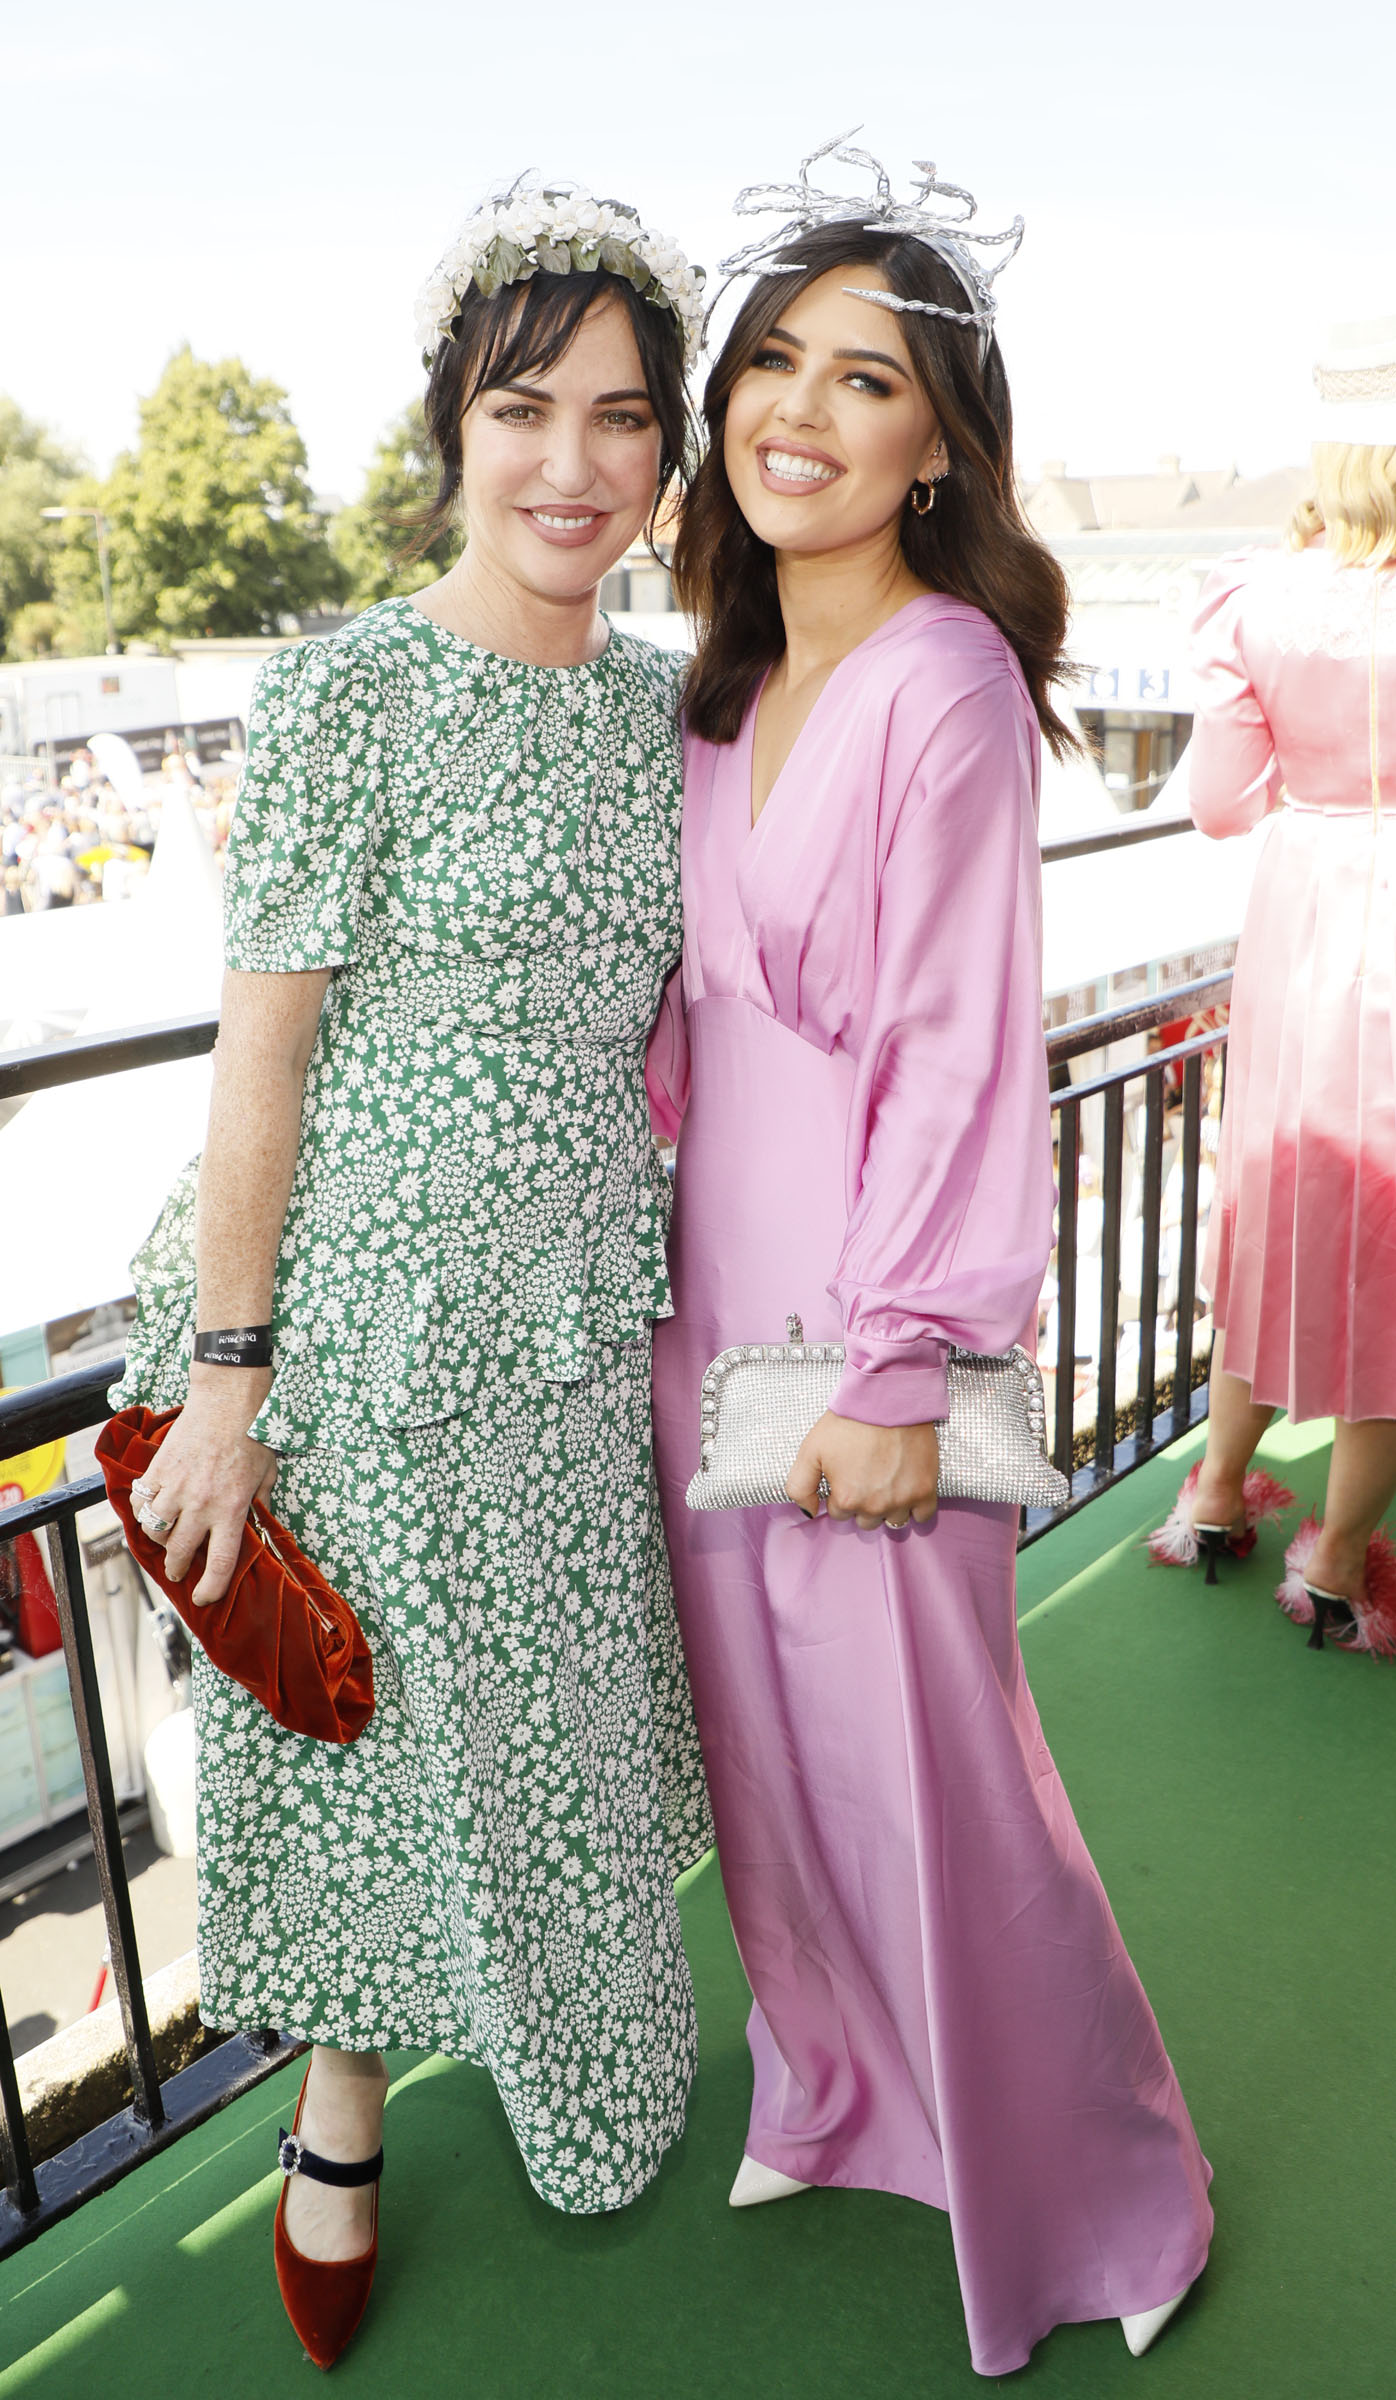 Morah and Bonnie Ryan at the Dundrum Town Centre Ladies' Day at the Dublin Horse Show in the RDS. Photo: Kieran Harnett